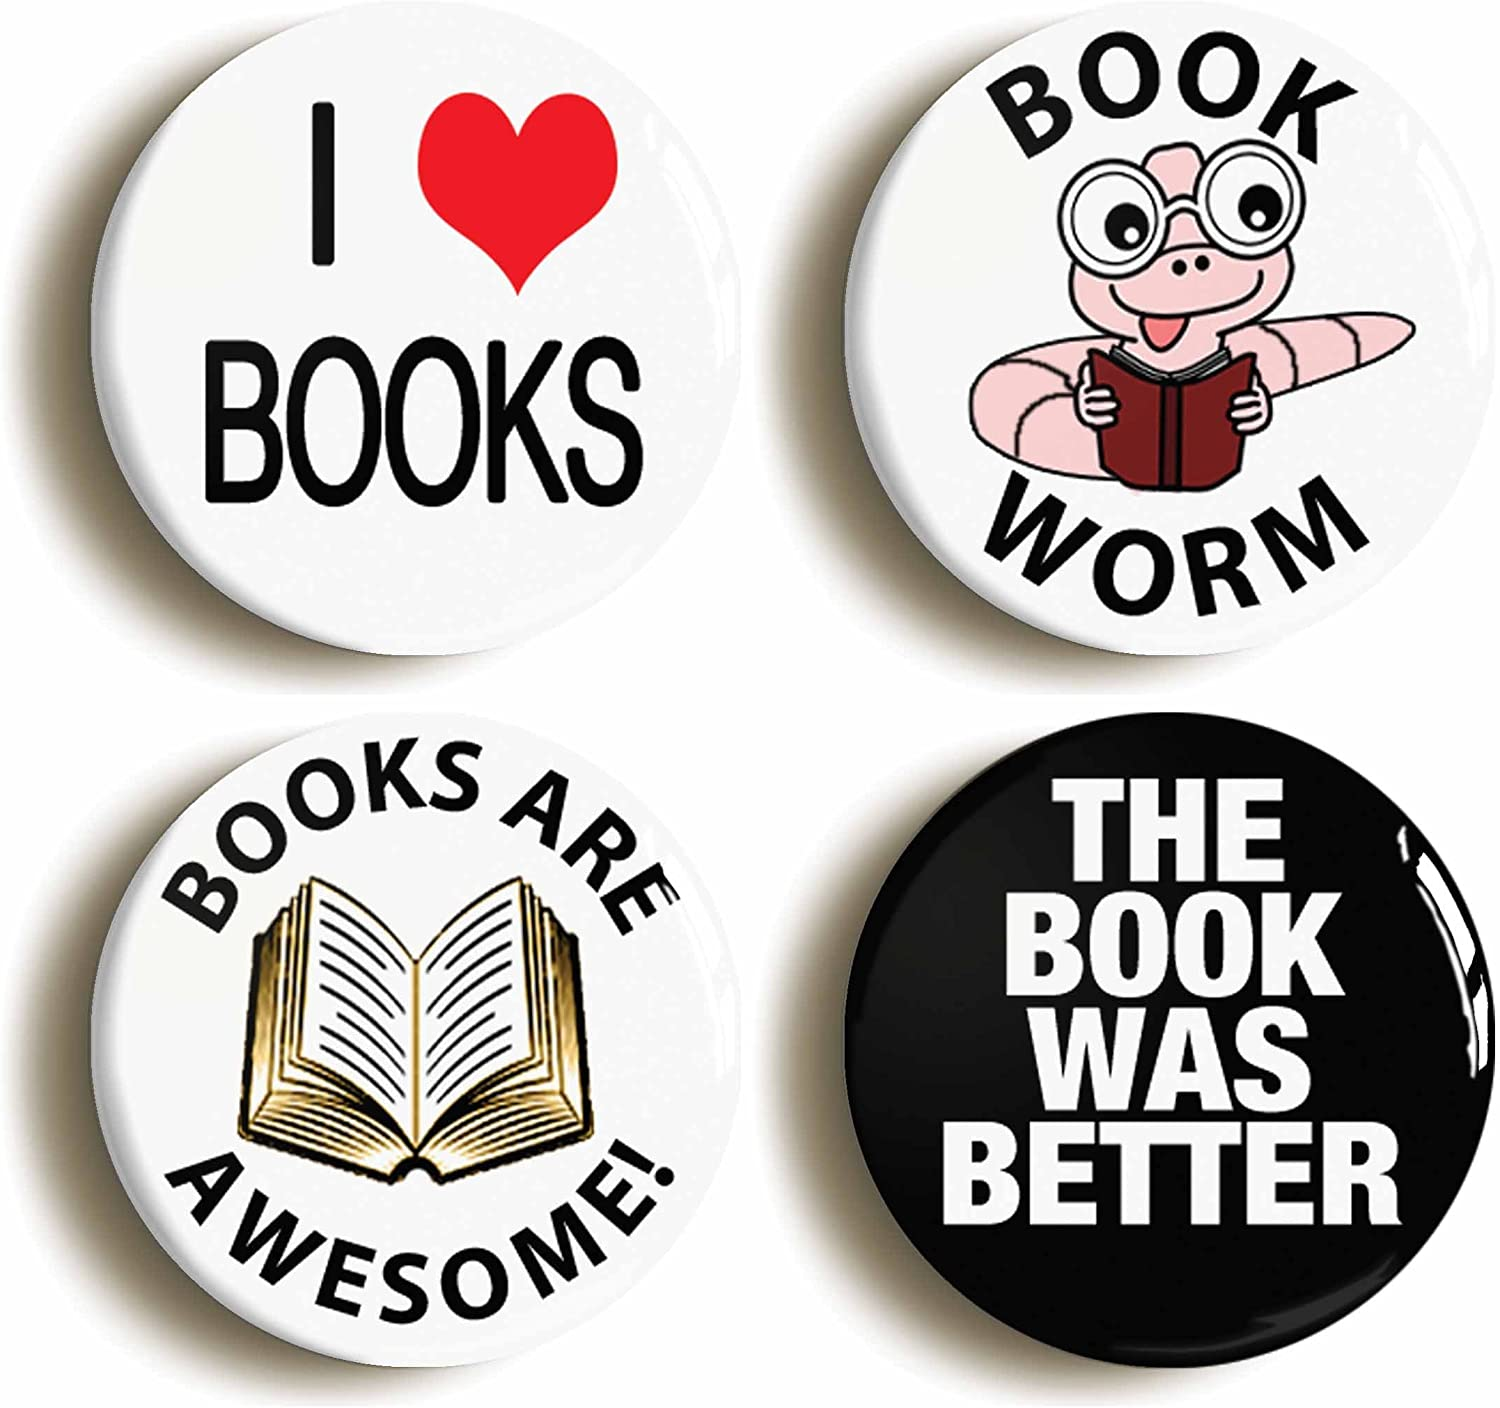 LIBRARY THE BOOK WAS BETTER FUNNY BADGE BUTTON PIN Size is 1inch//25mm diameter